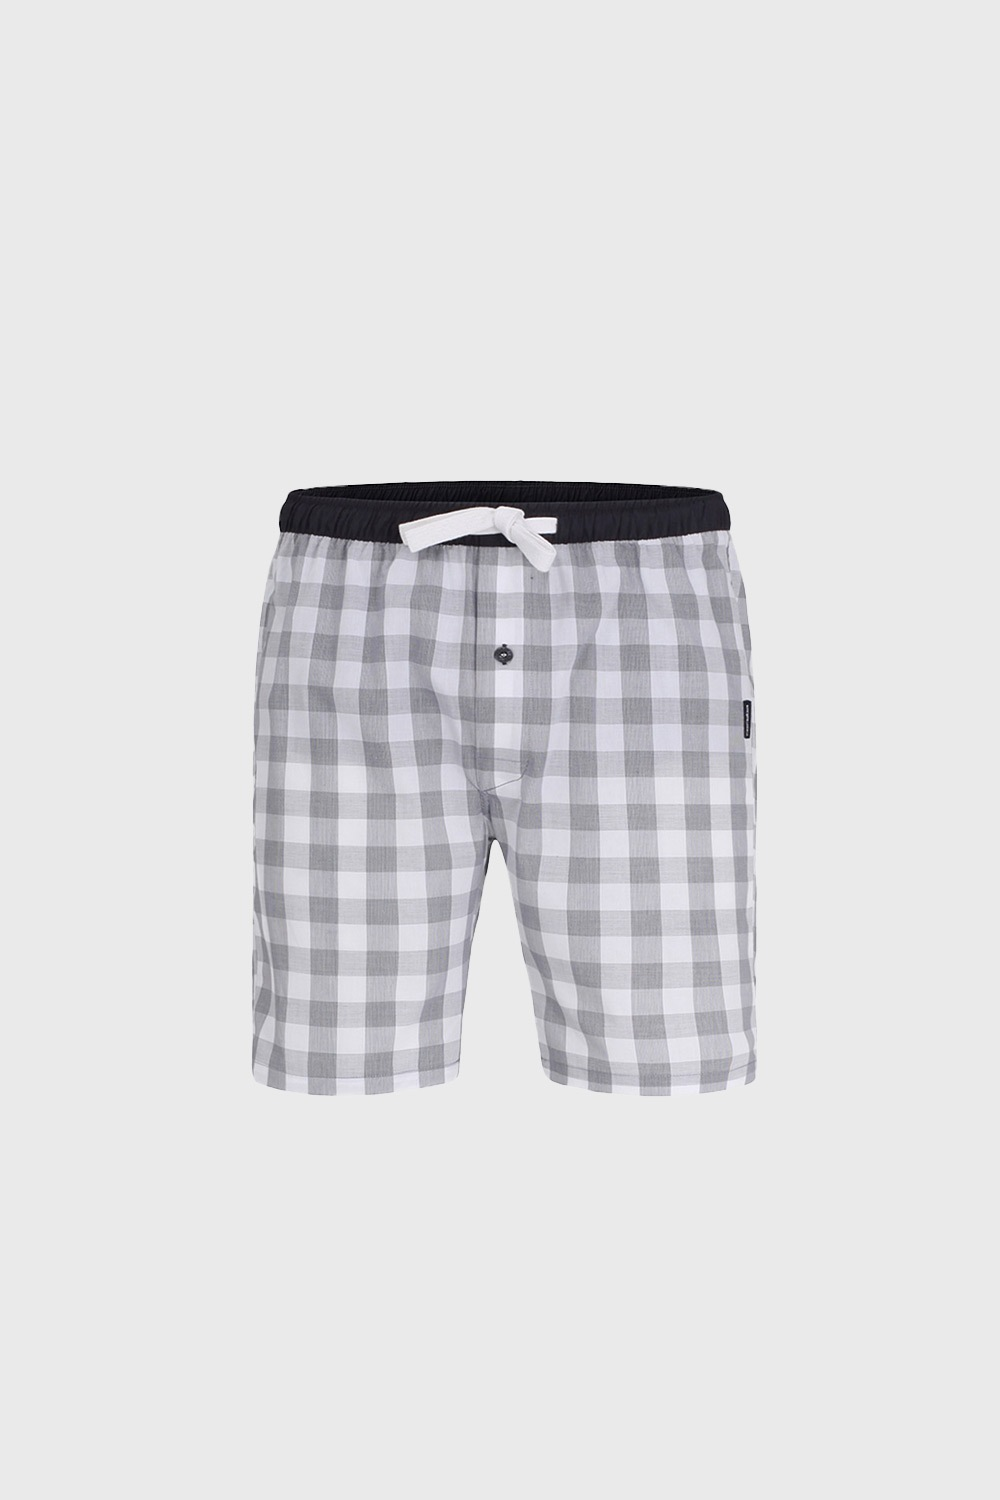 Ceceba Blue Light Check Pyjama Shorts